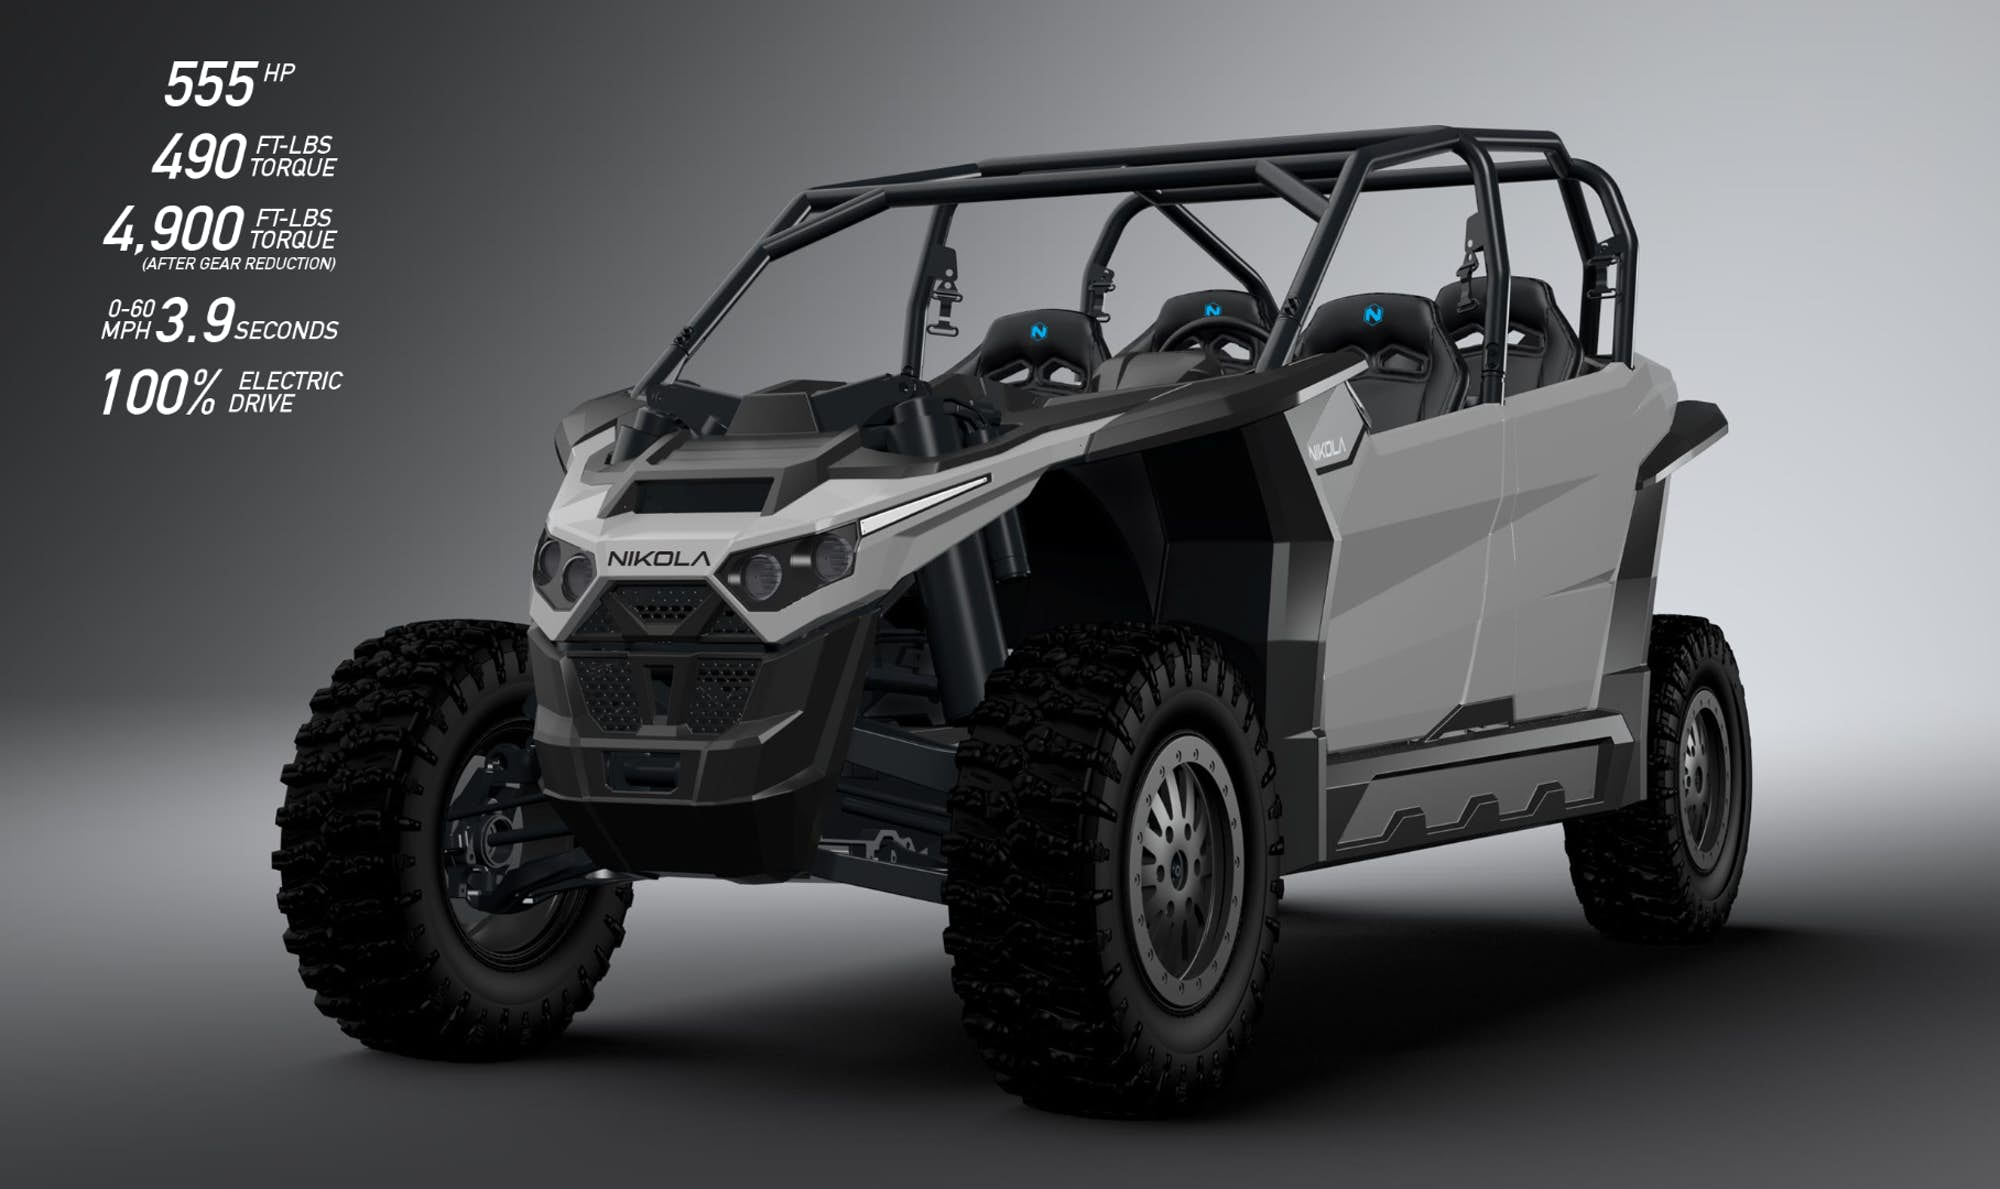 555-hp Nikola electric side-by-side tears through dirt for up to 200 miles a charge